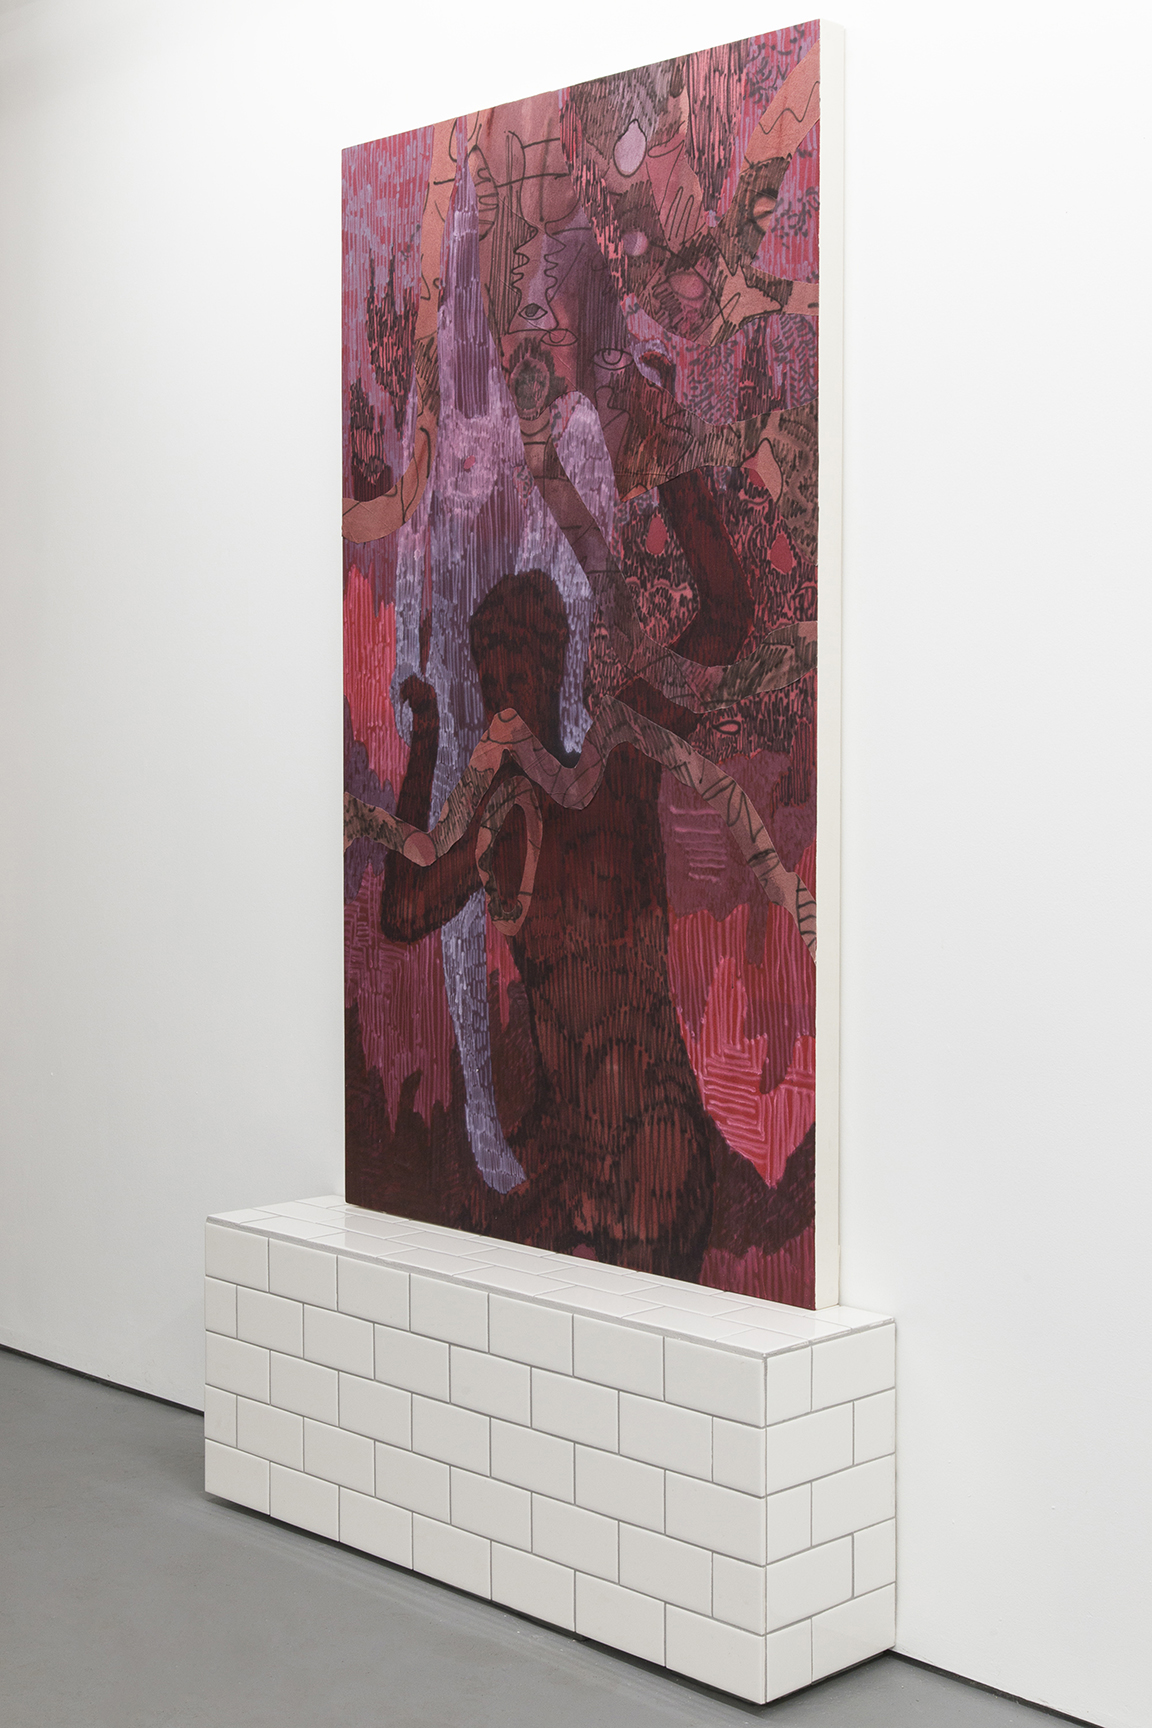 It could be easier together, 2015, 38 x 60 inches, acrylic on cotton. Tile stand, wood and ceramic tiles.